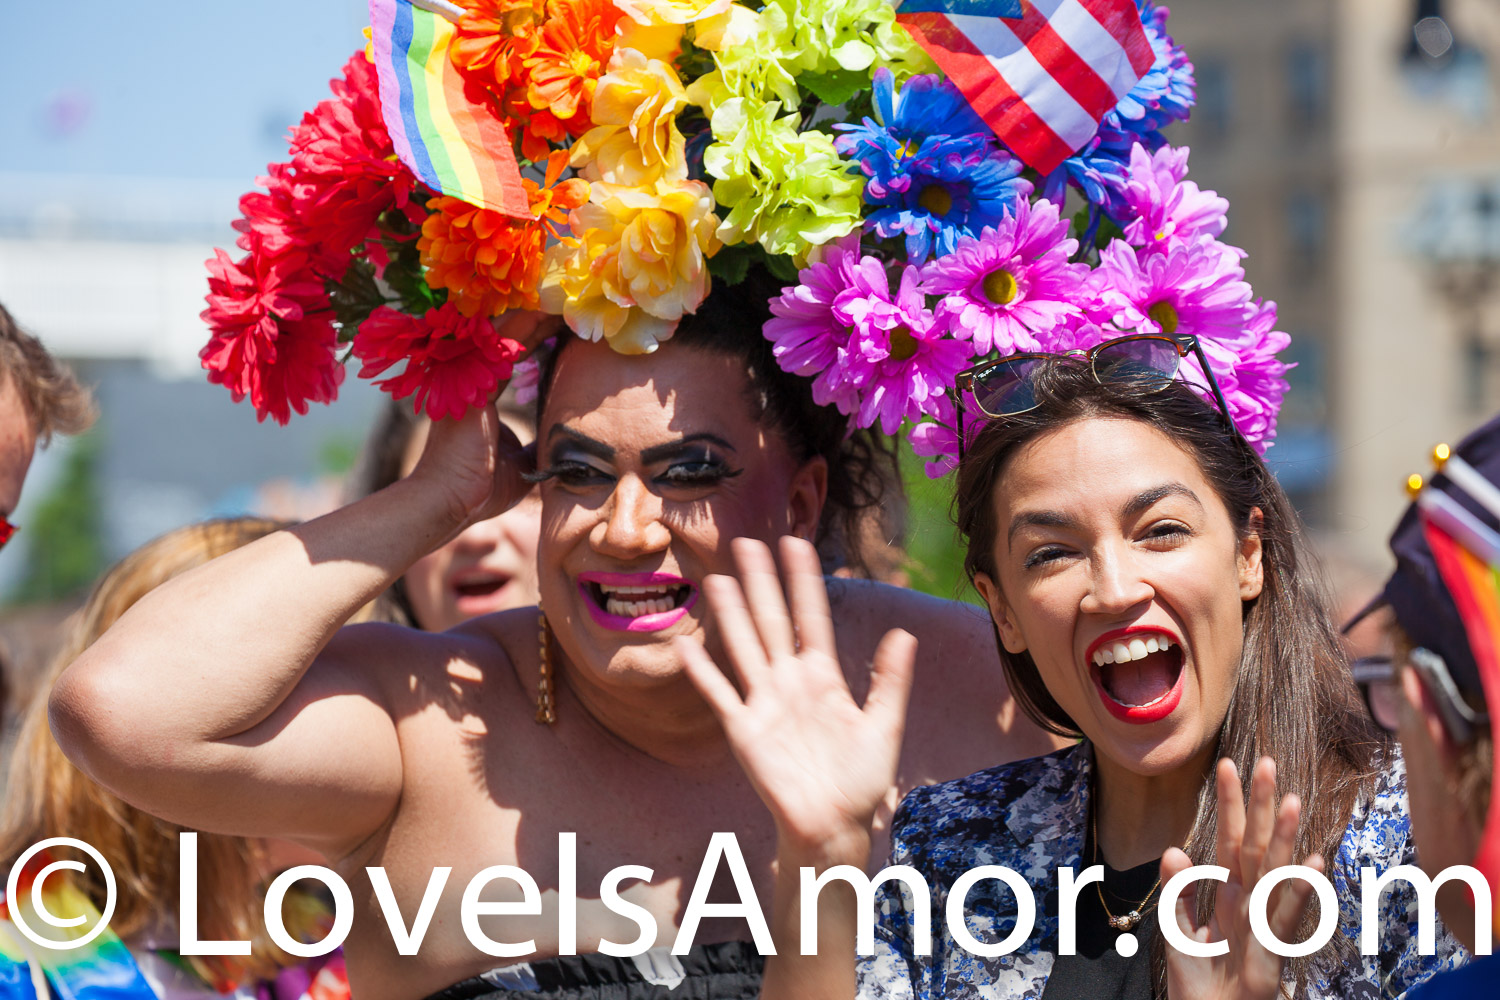 New York City – The 1 Bronx World Pride Rally, March and Festival was on Sunday, June 23, 2019. People celebrated Bronx World Pride, Pride Month and the 50th anniversary of the Stonewall Rebellion. The rally was at 161st Street and Grand Concourse. Alexandria Ocasio-Cortez Congresswoman for New York's 14th congressional district: Bronx – Queens, was one of the speakers. AOC (often referred to by her initials) marched from 161st Street and Grand Concourse to the festival at 49th Street and 3rd Ave.